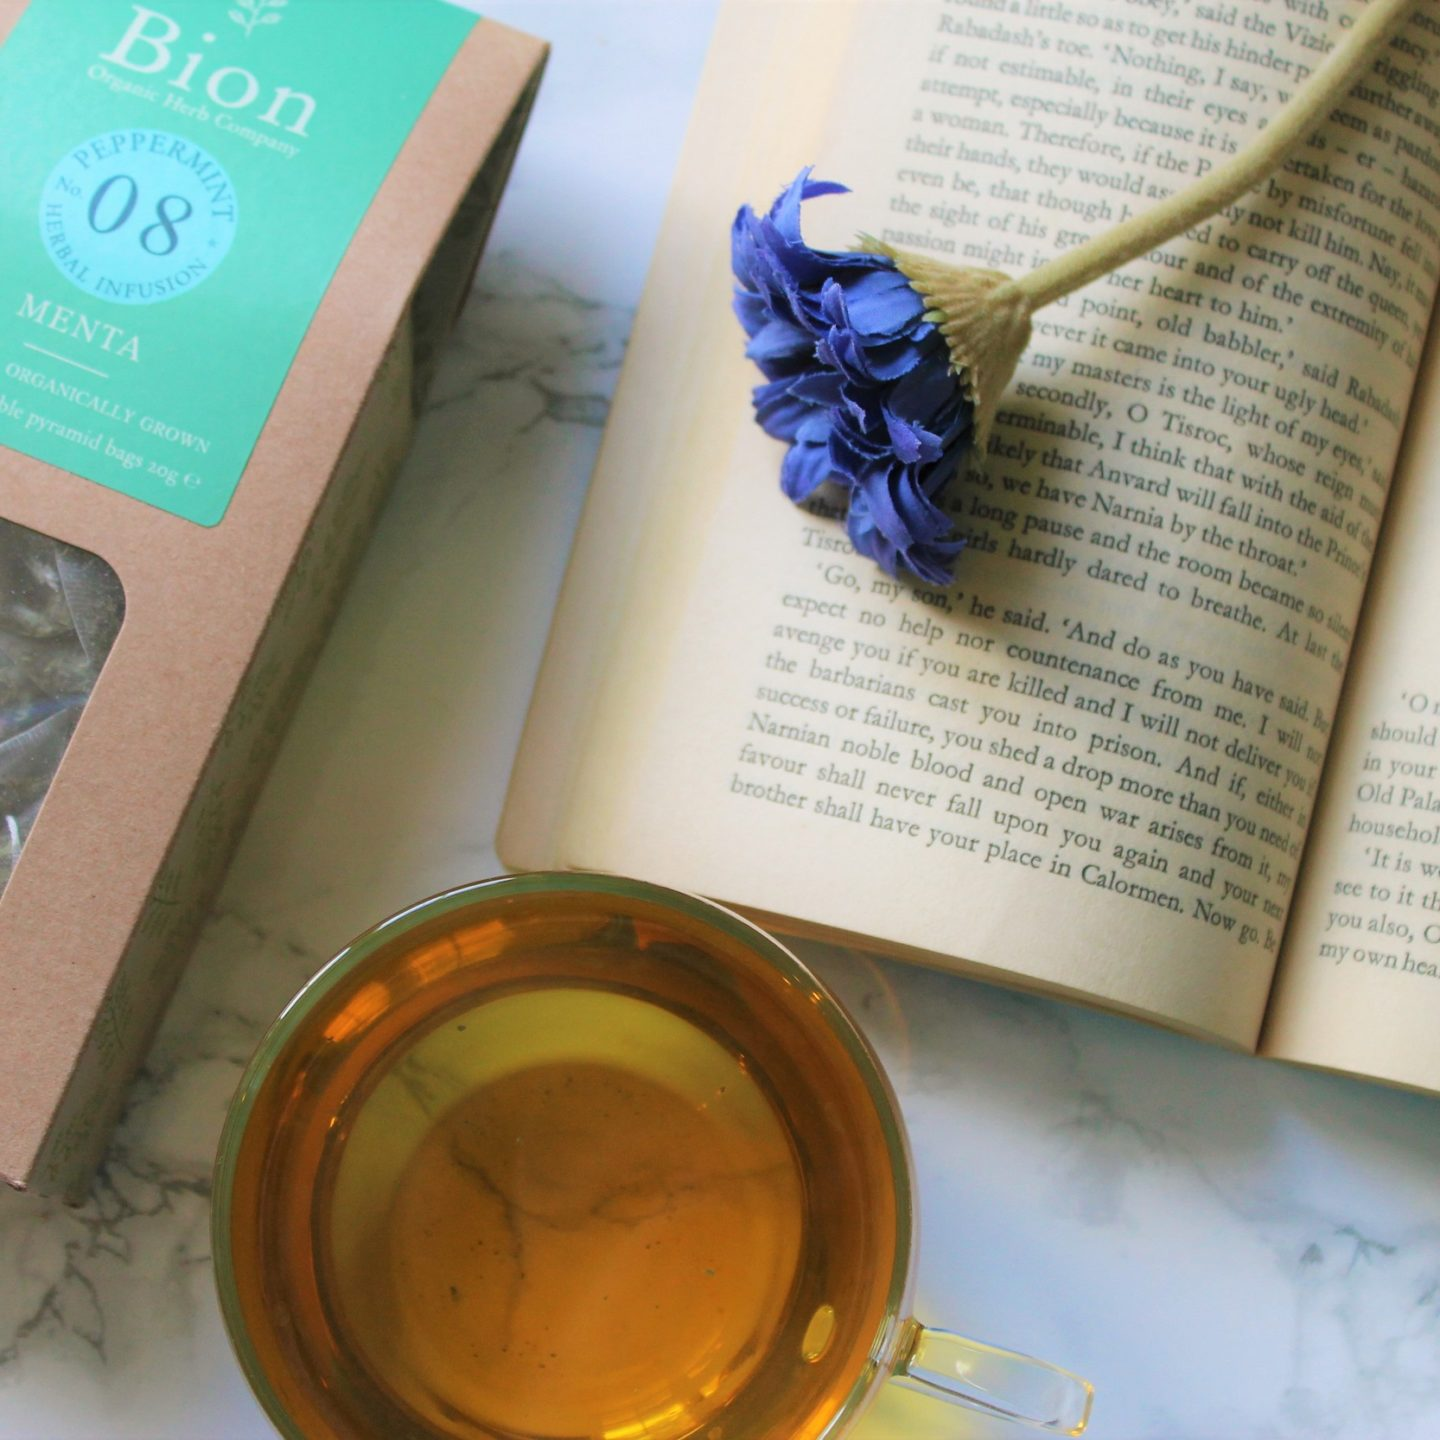 Bion Peppermint Tea Review